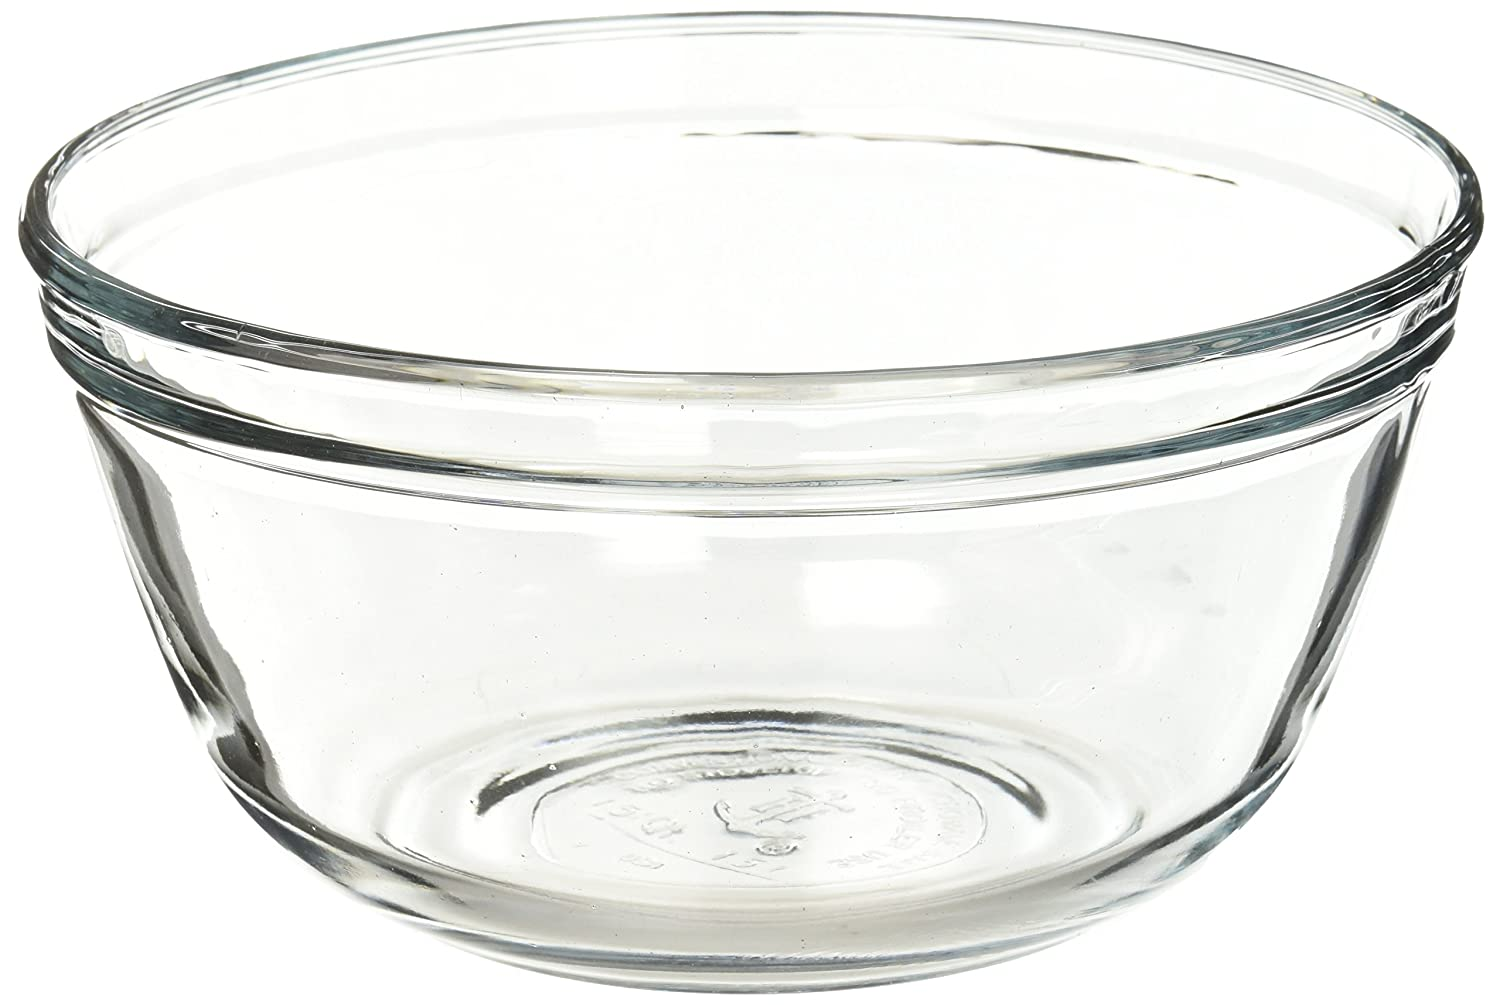 Anchor Hocking 81574 1.5 Litre Glass Mixing Bowl Batter Bowl Toughened Glass Dexam 77974